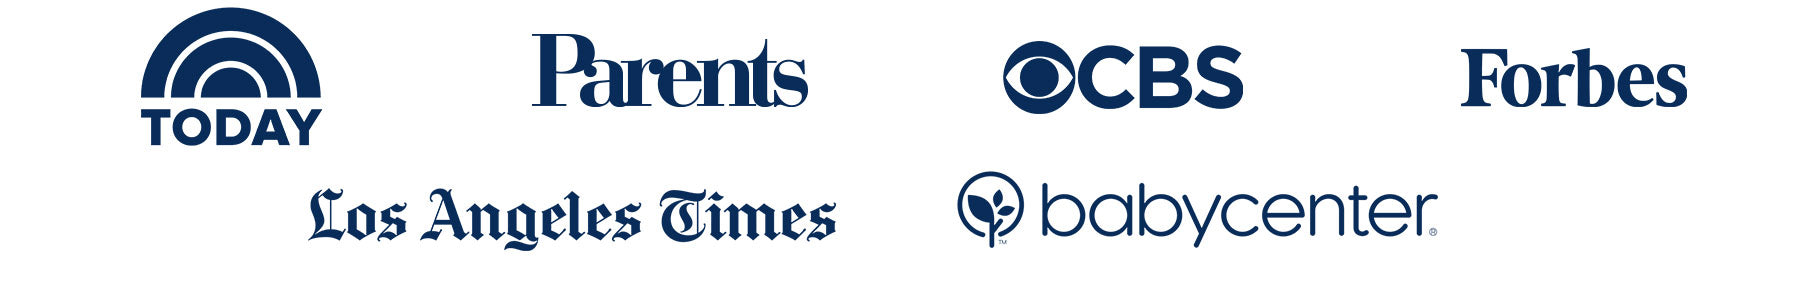 logos of media outlets featuring spoonfulone